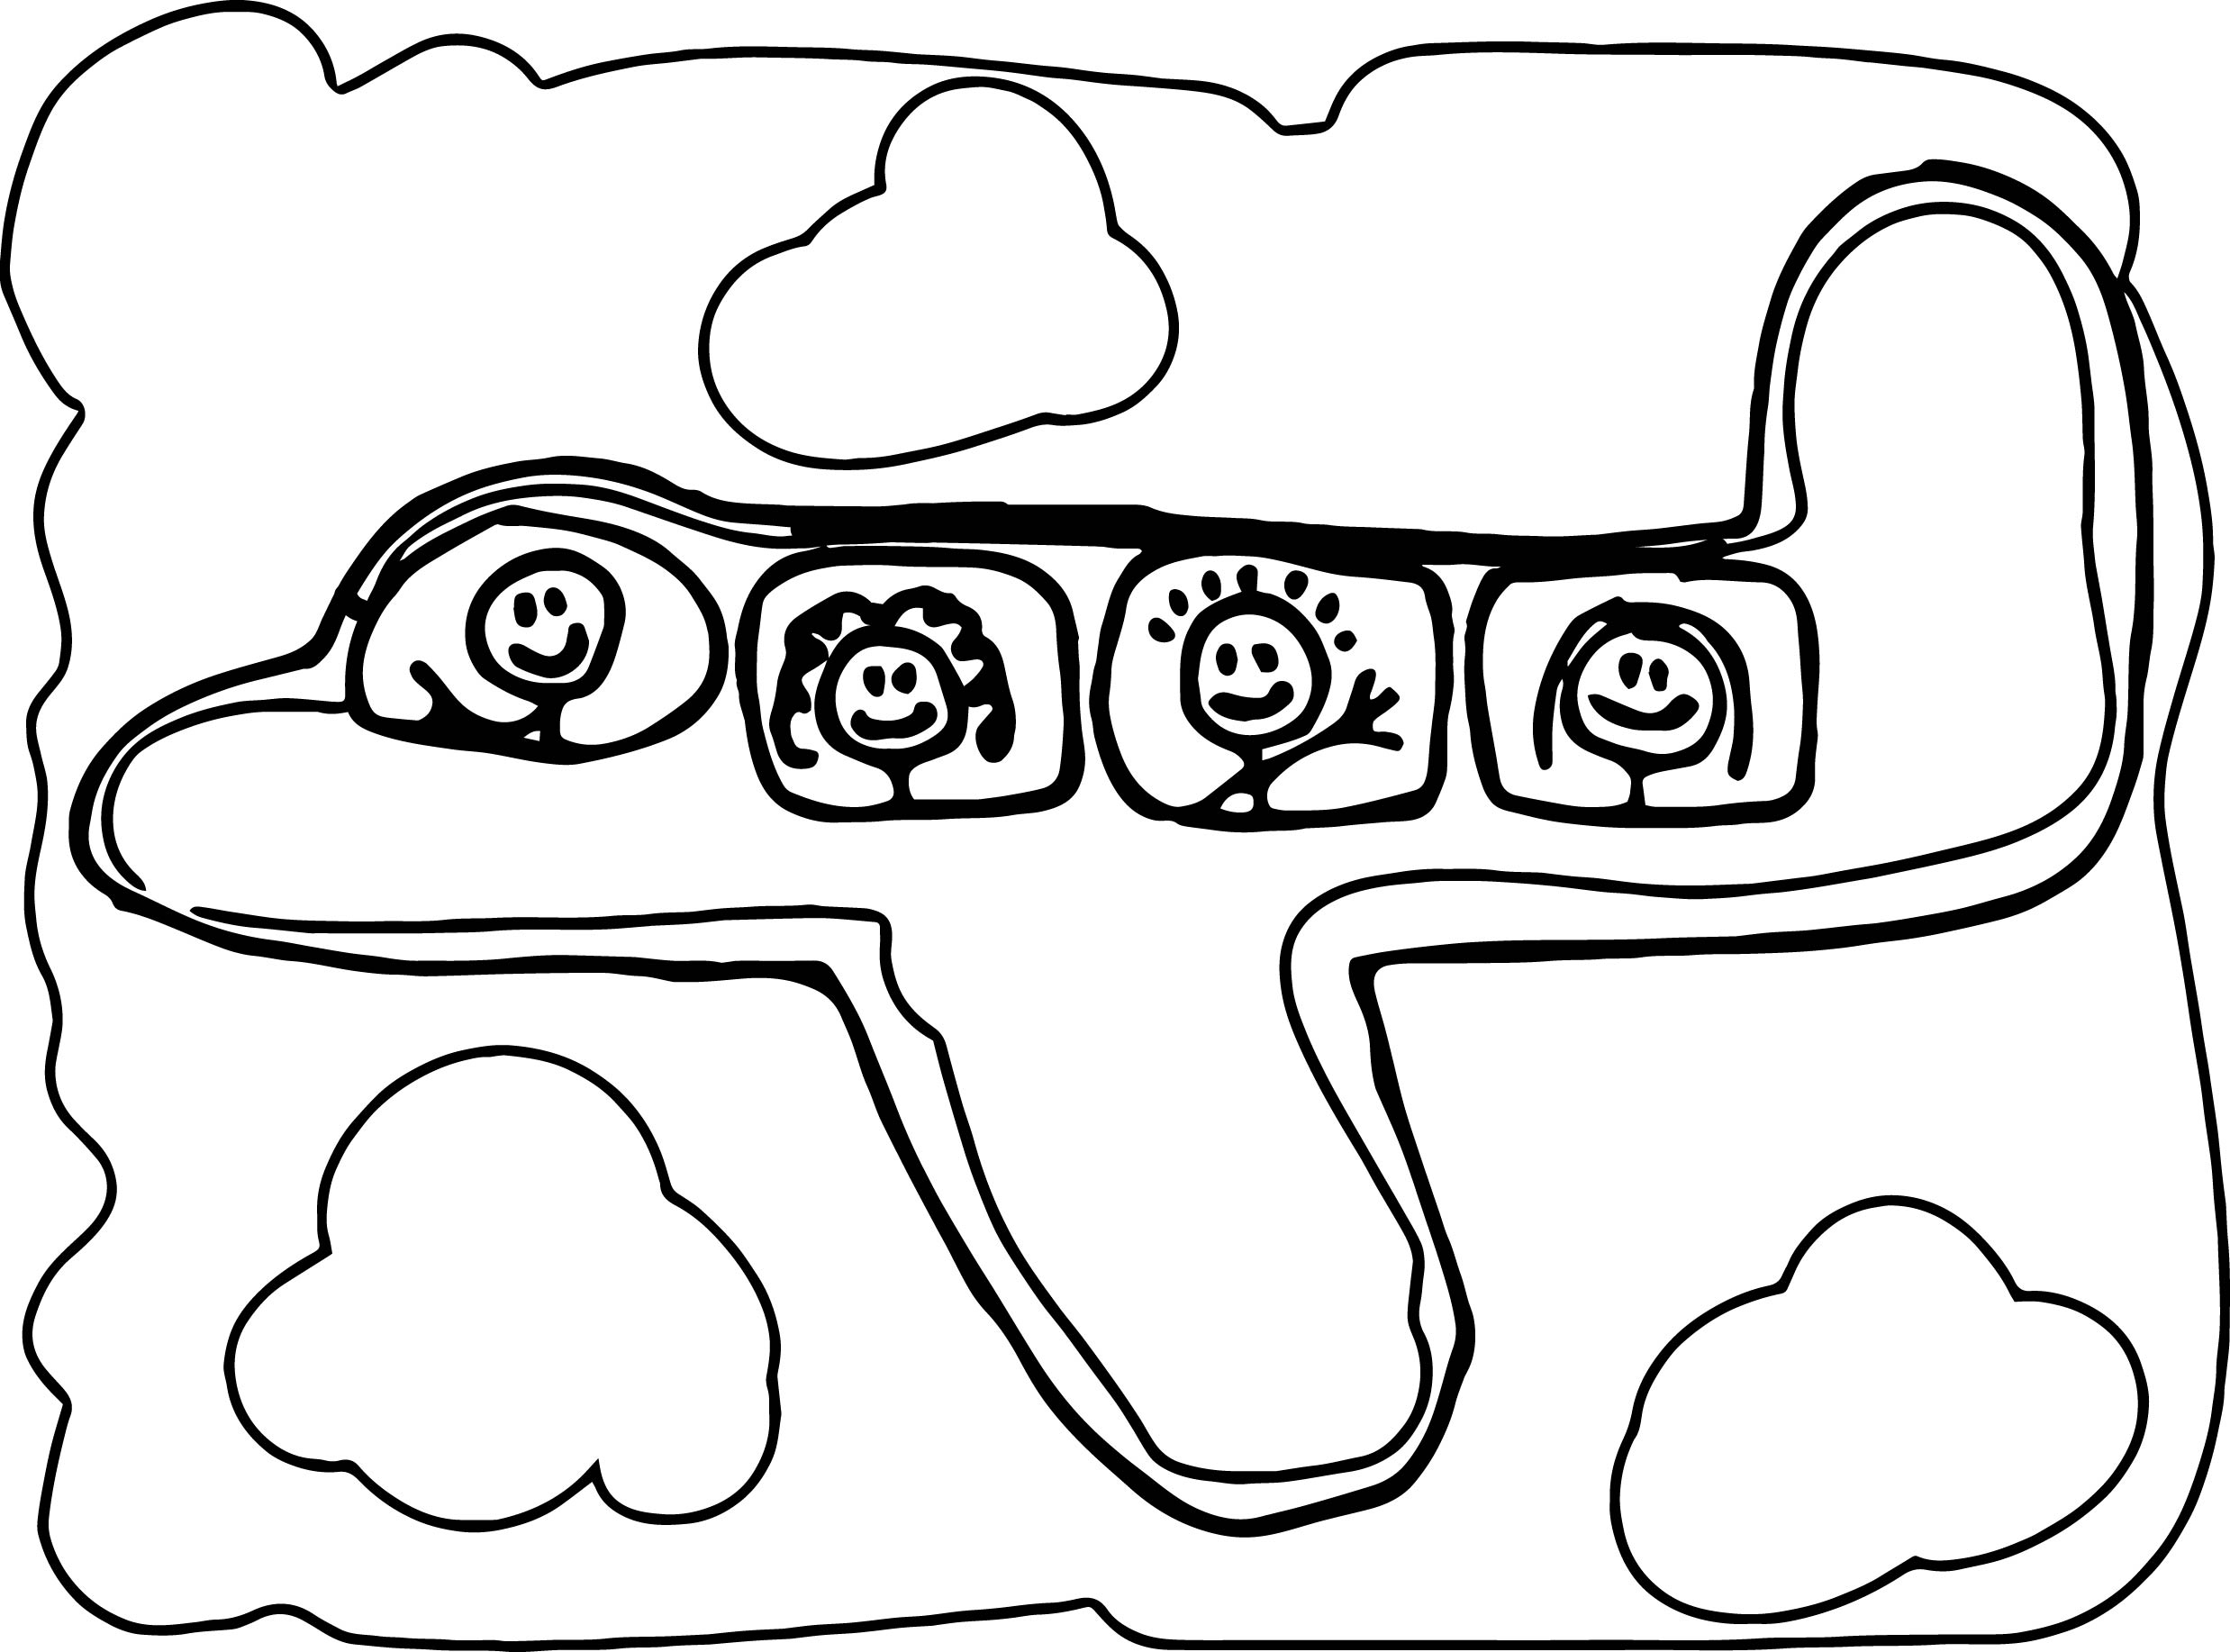 Basic Airplane Coloring Page